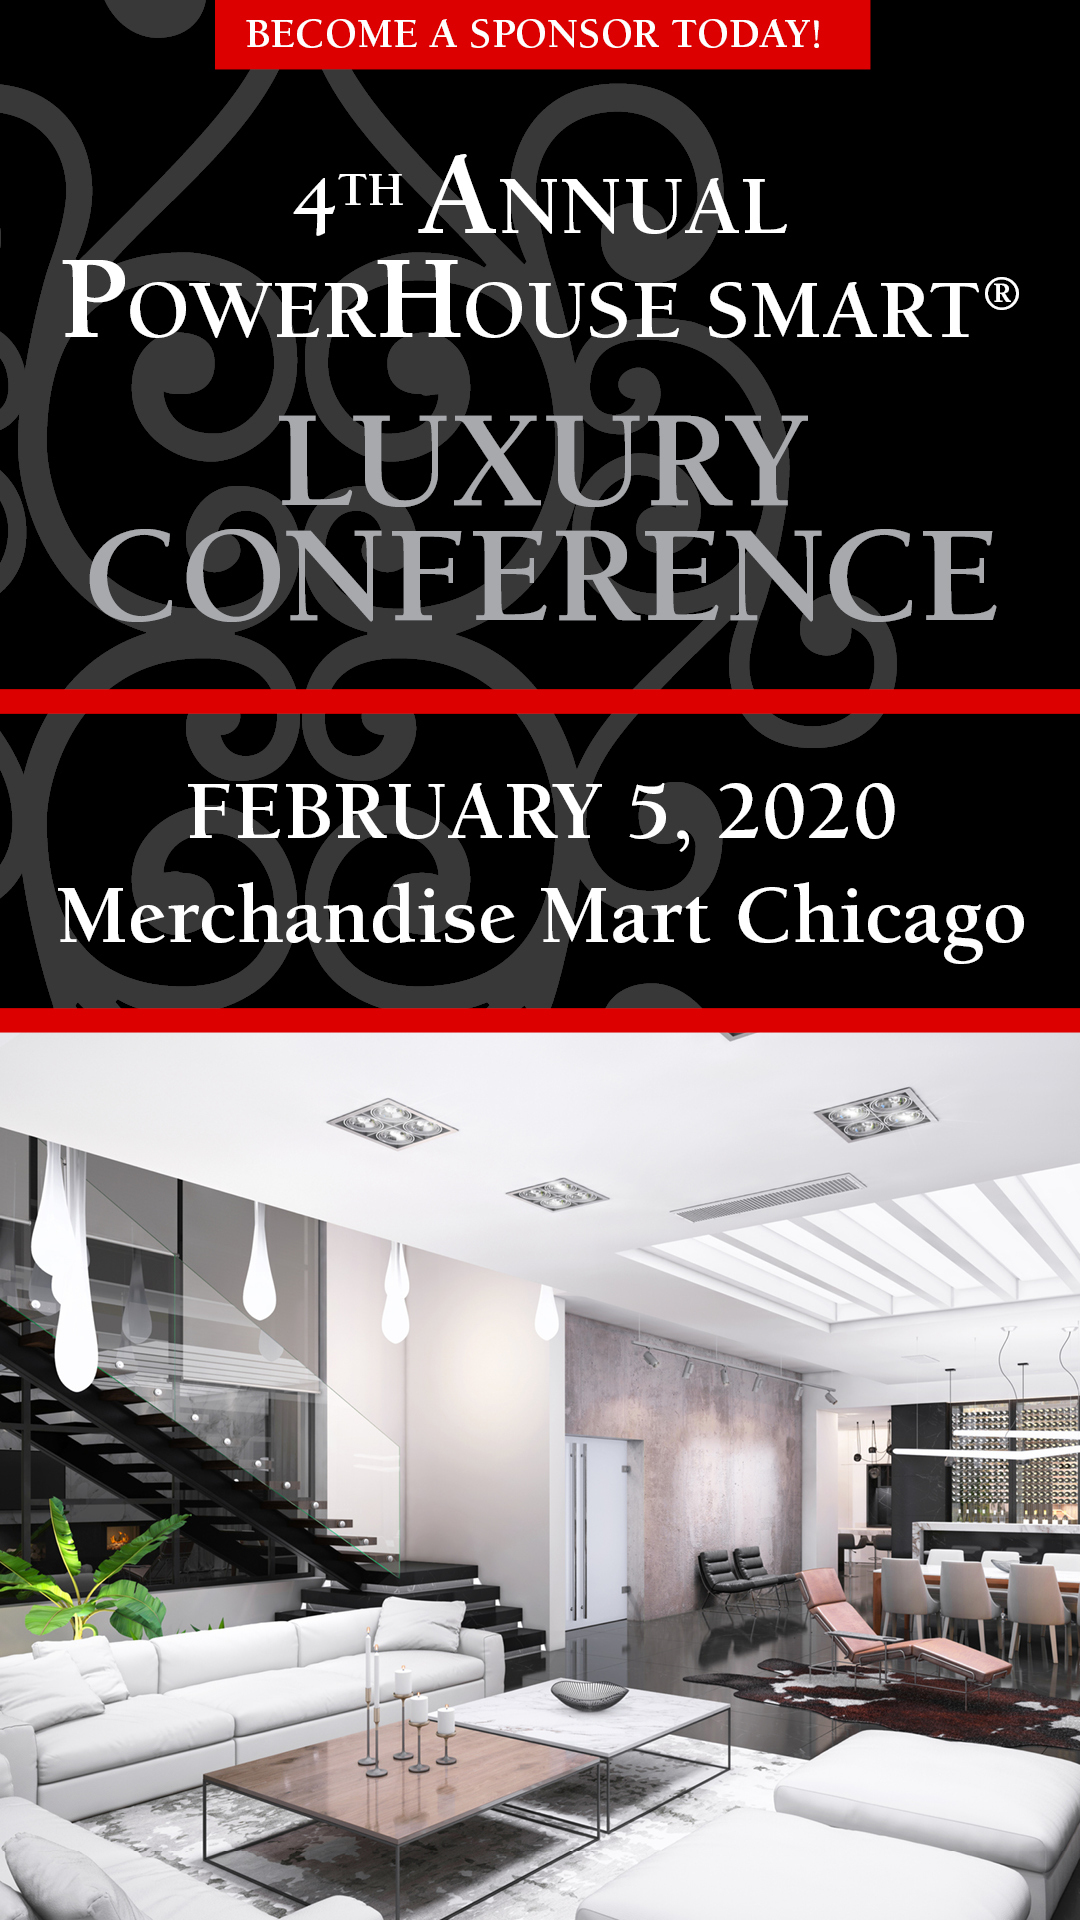 PHS Luxury Conference Sponsorships